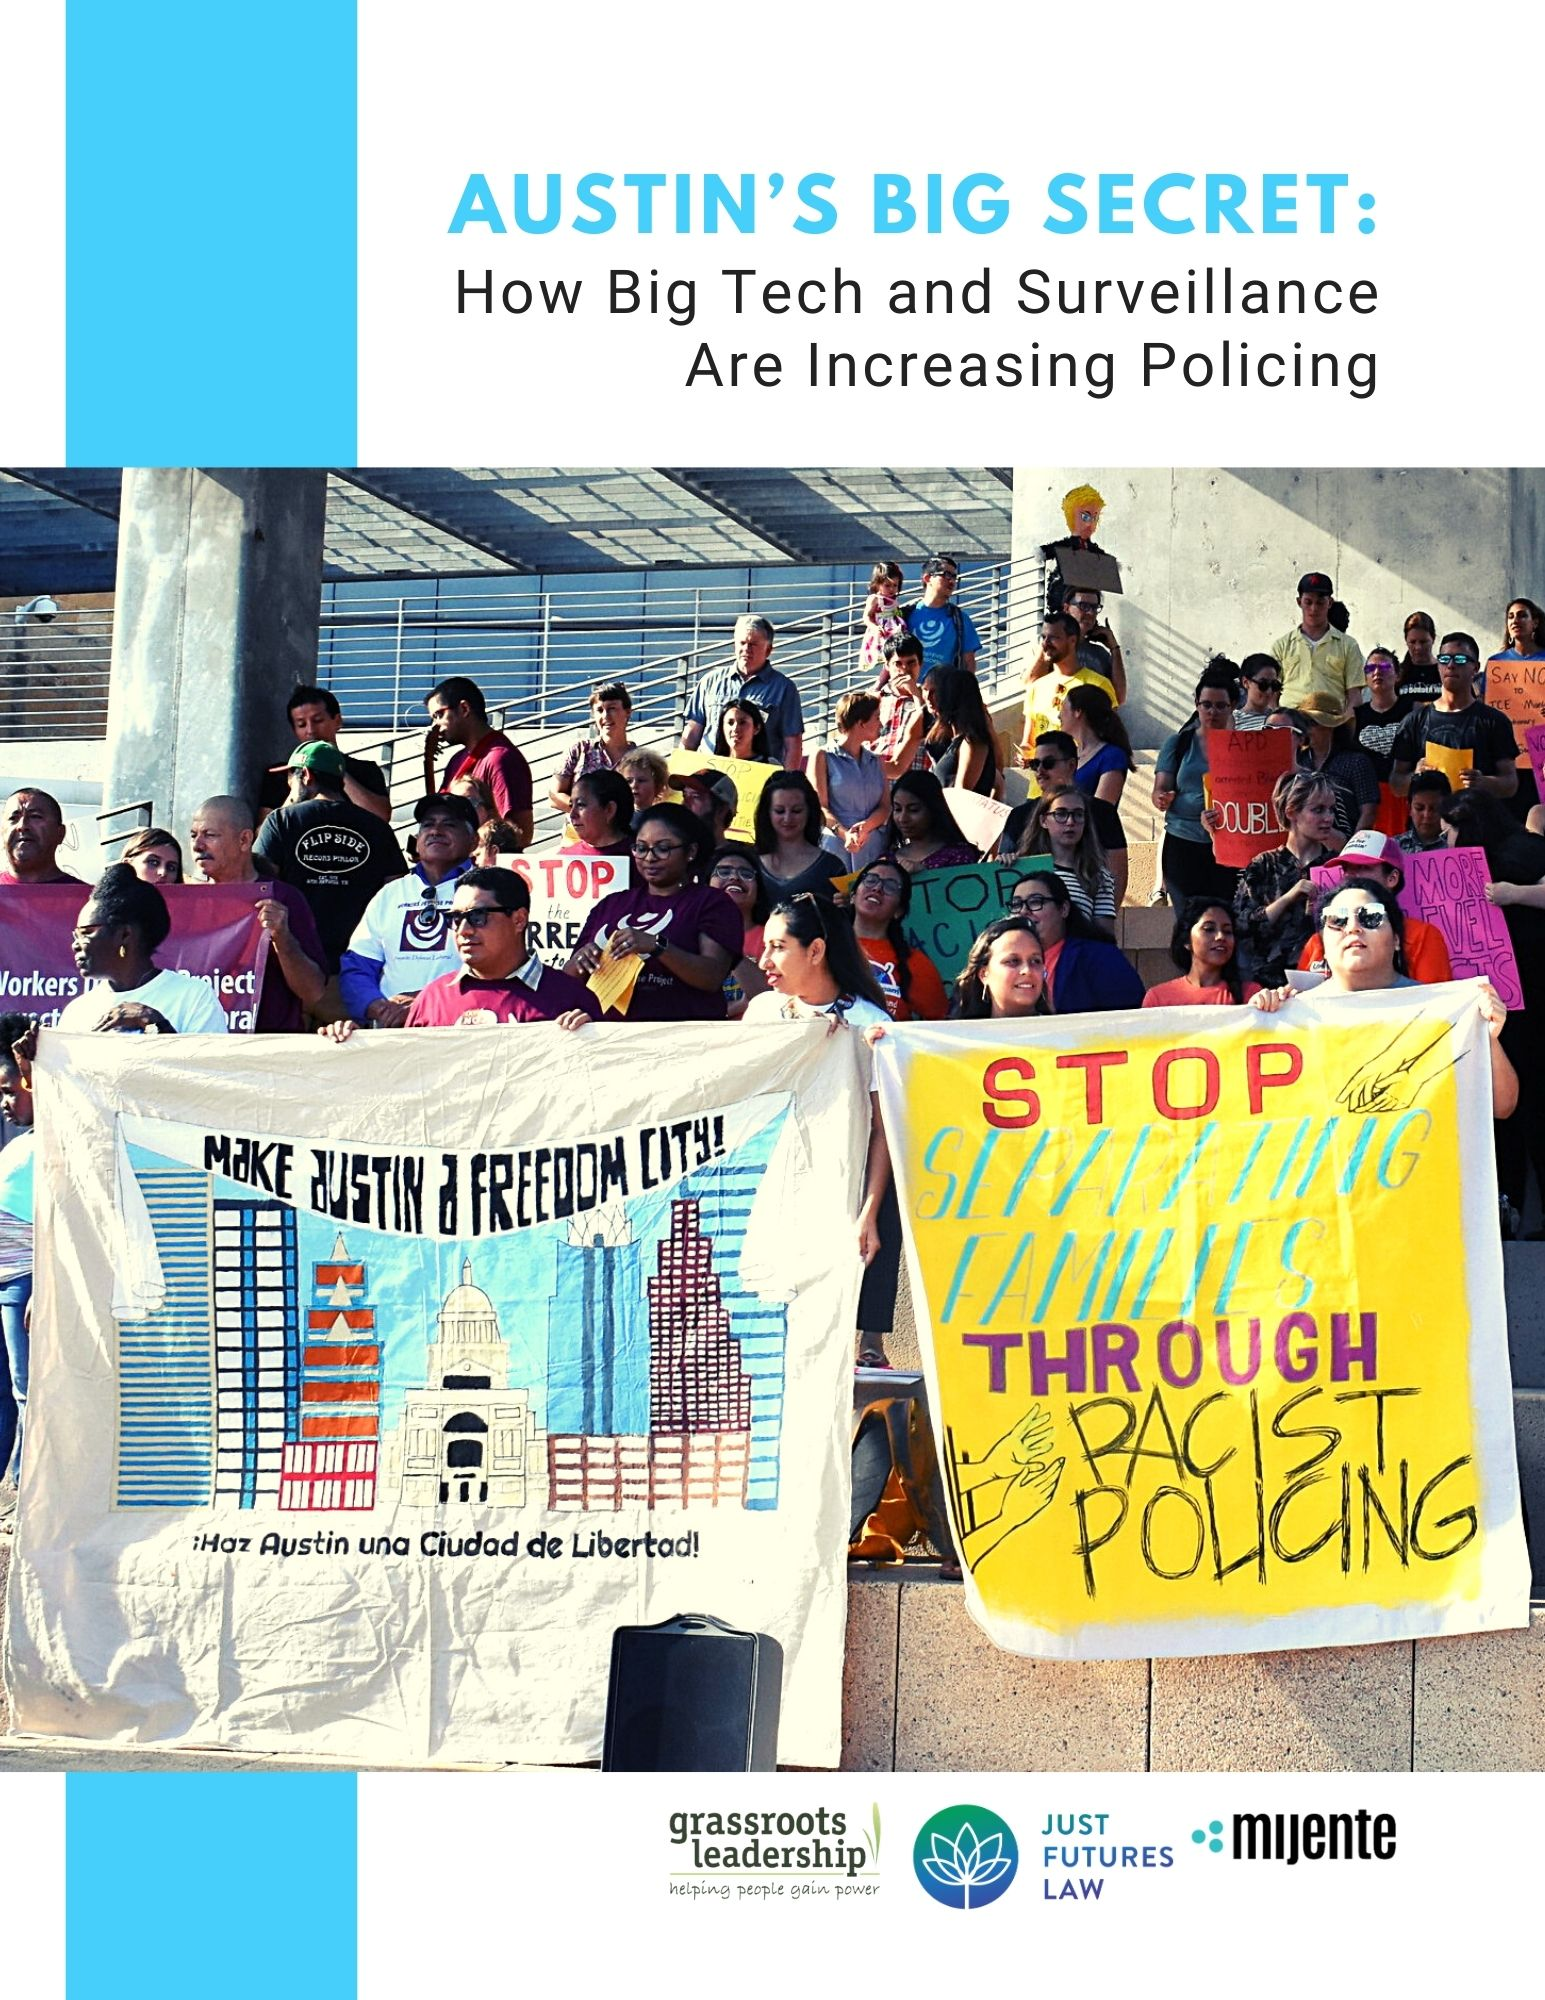 Austin's Big Secret: How Big Tech and Surveillance Are Increasing Policing